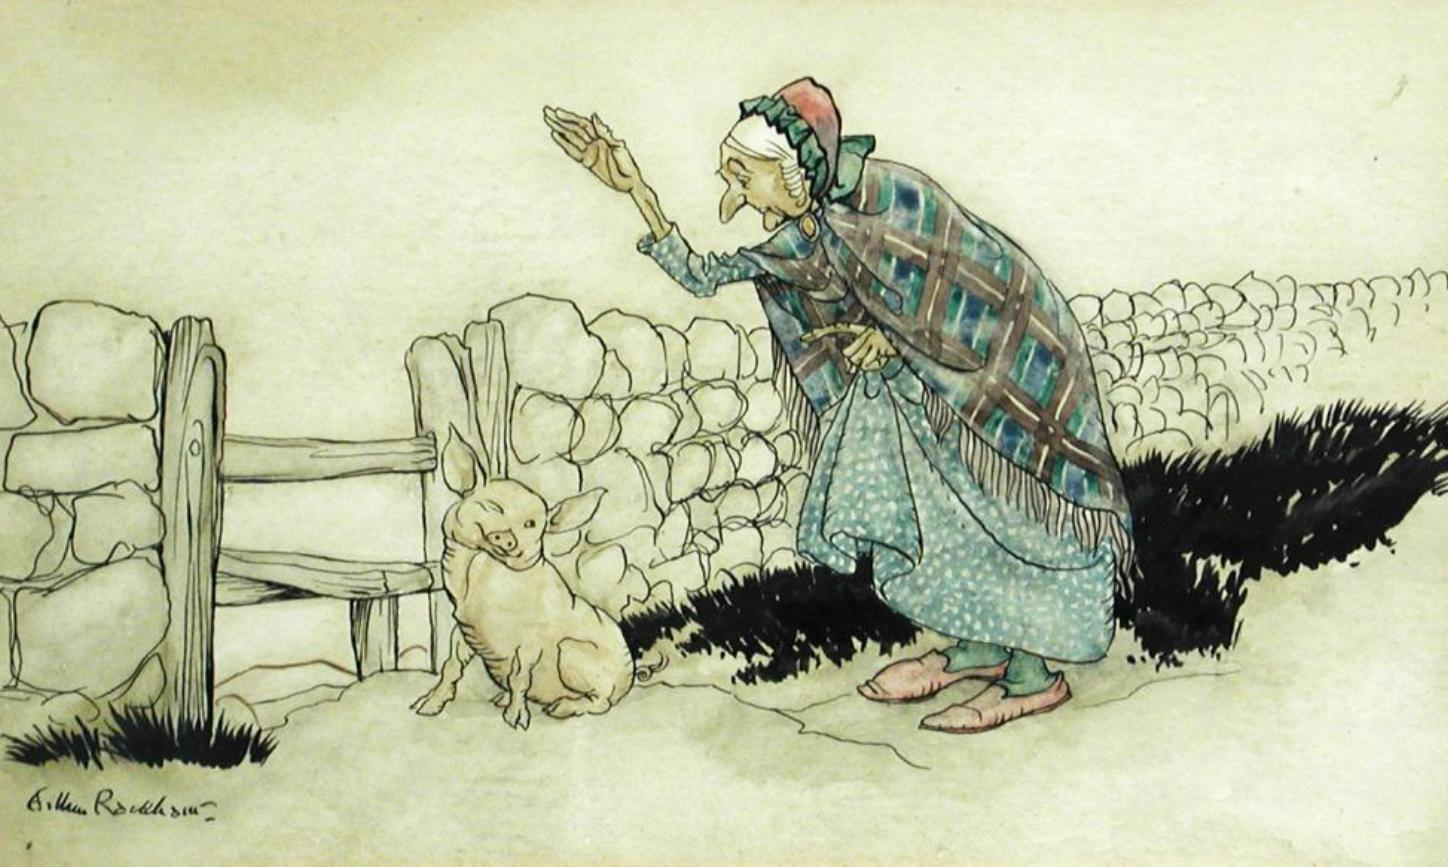 Original Watercolour Drawing of 'The Old Woman and the Pig'